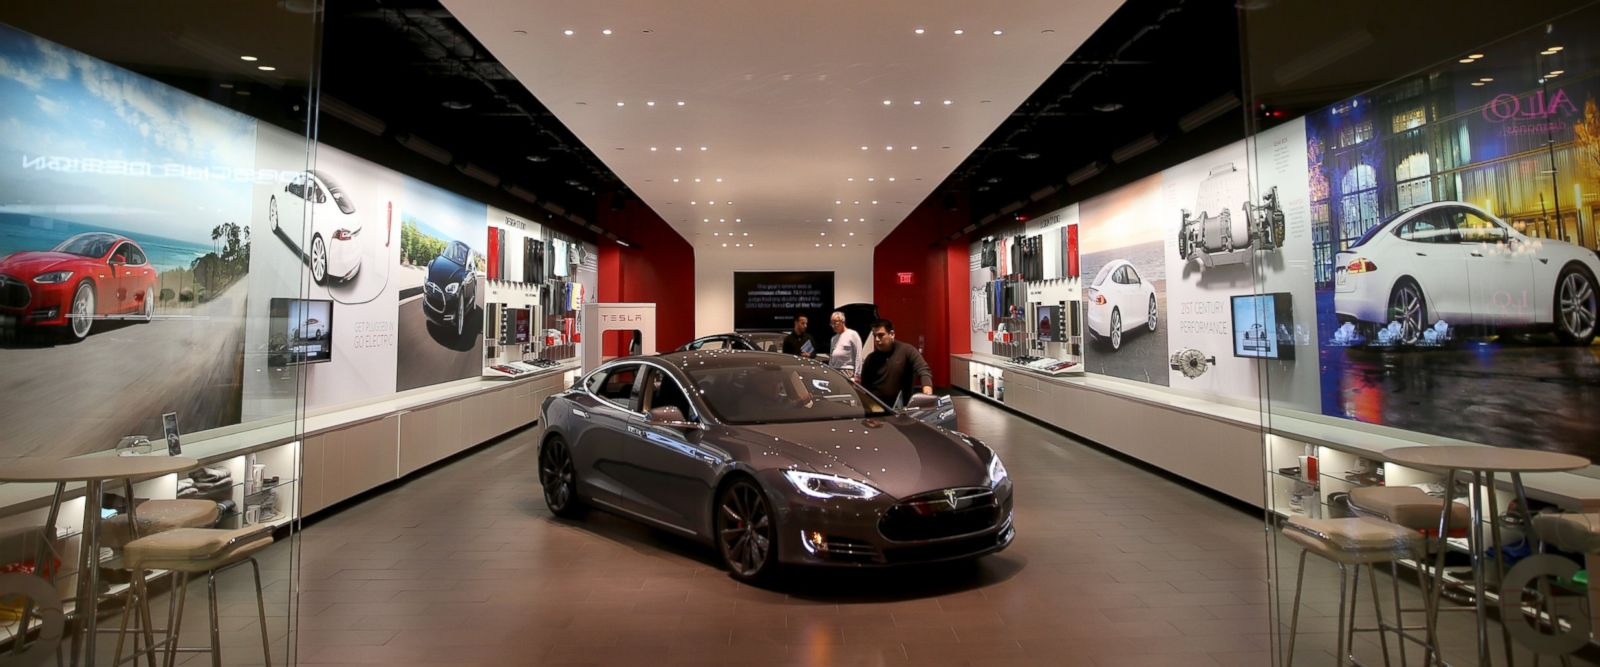 PHOTO: People look at a Tesla Motors vehicle on the showroom floor at the Dadeland Mall in Miami, Fla., Feb. 19, 2014.